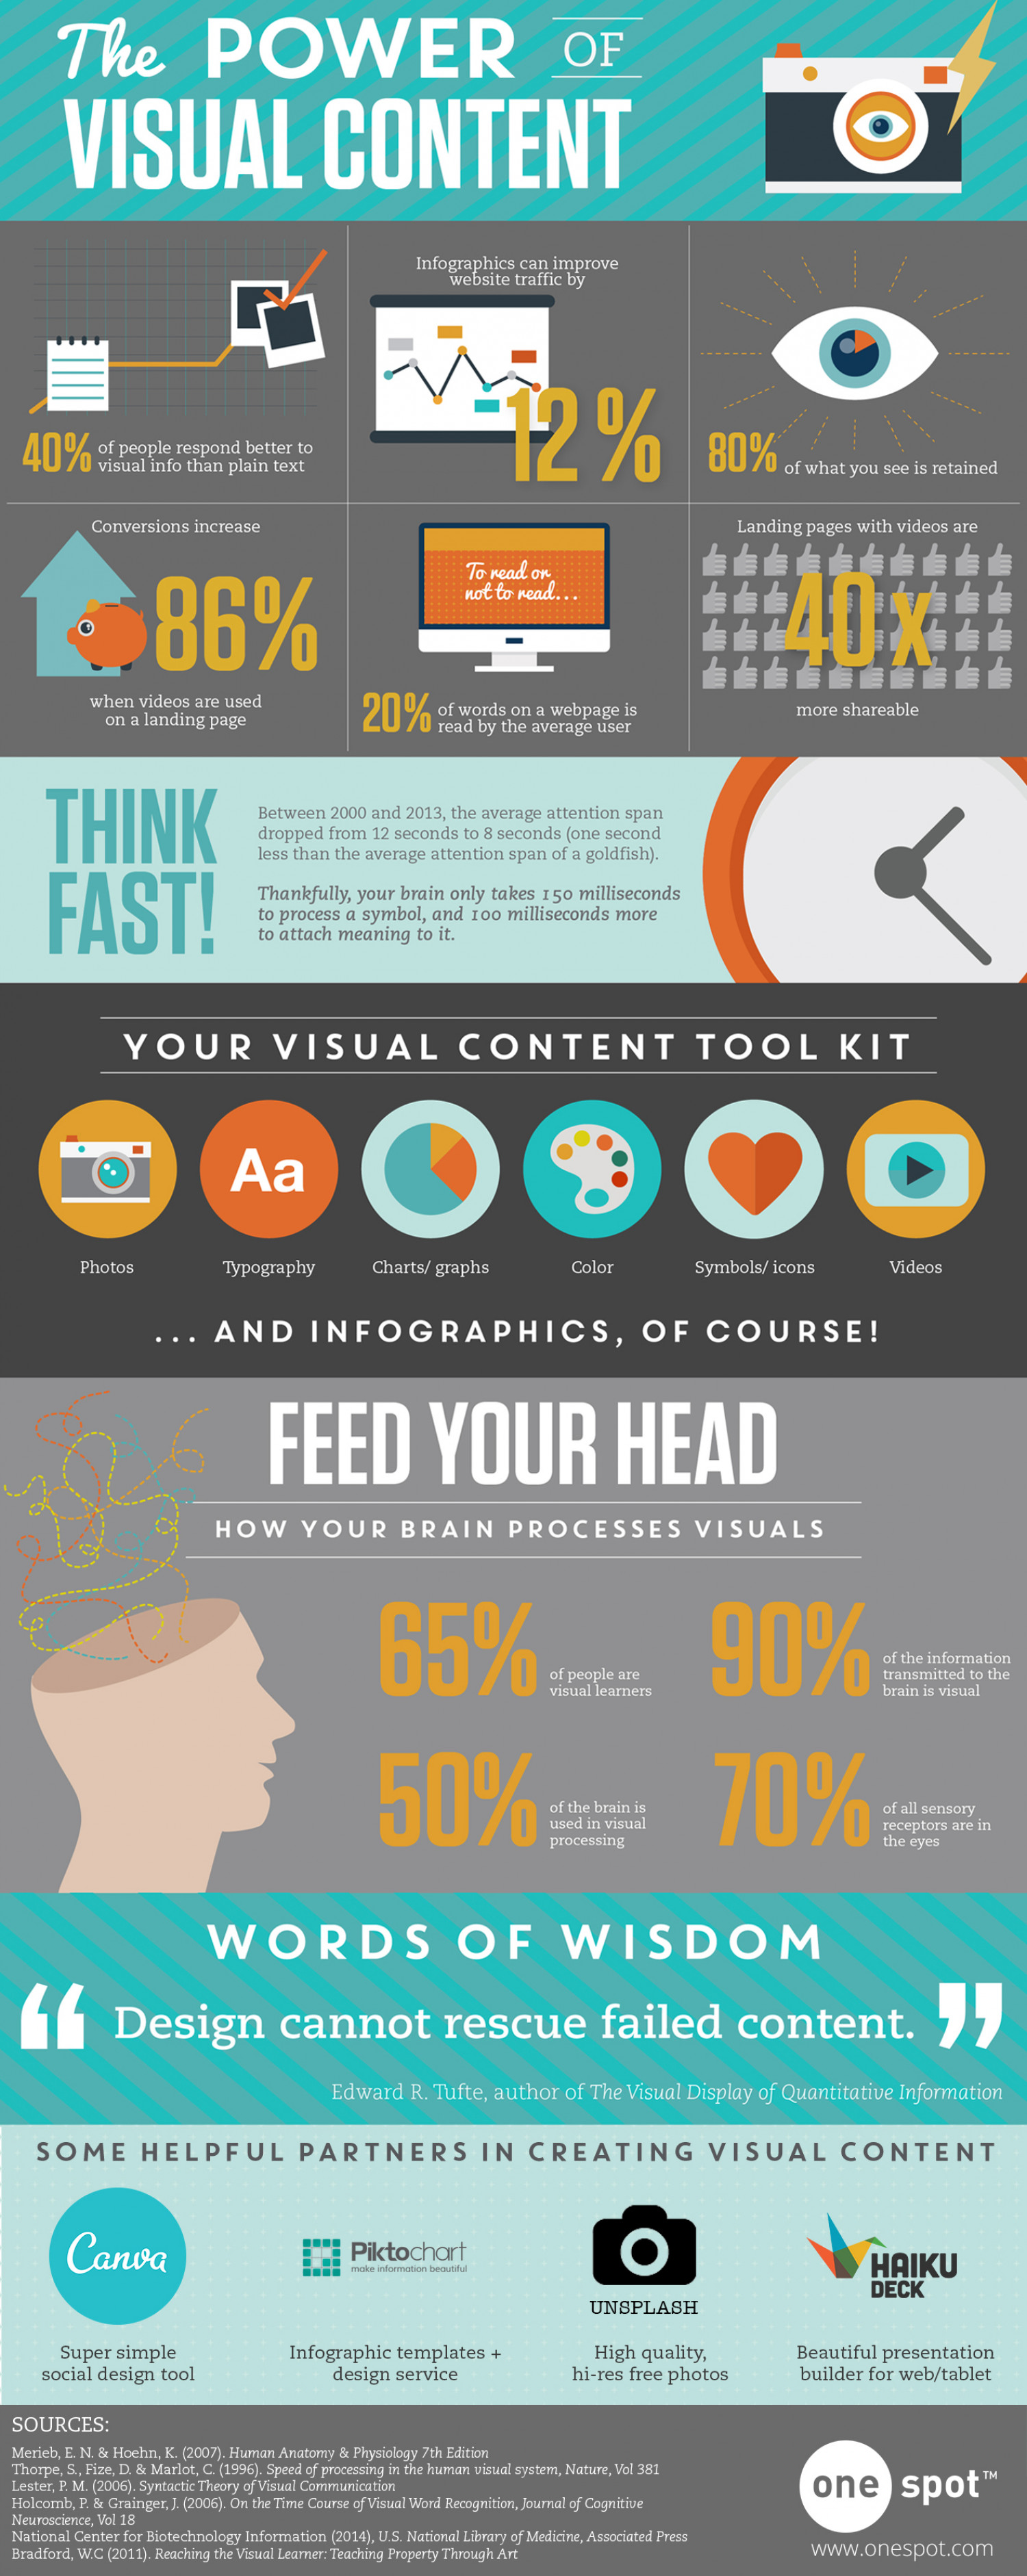 The Power of Visual Content Infographic